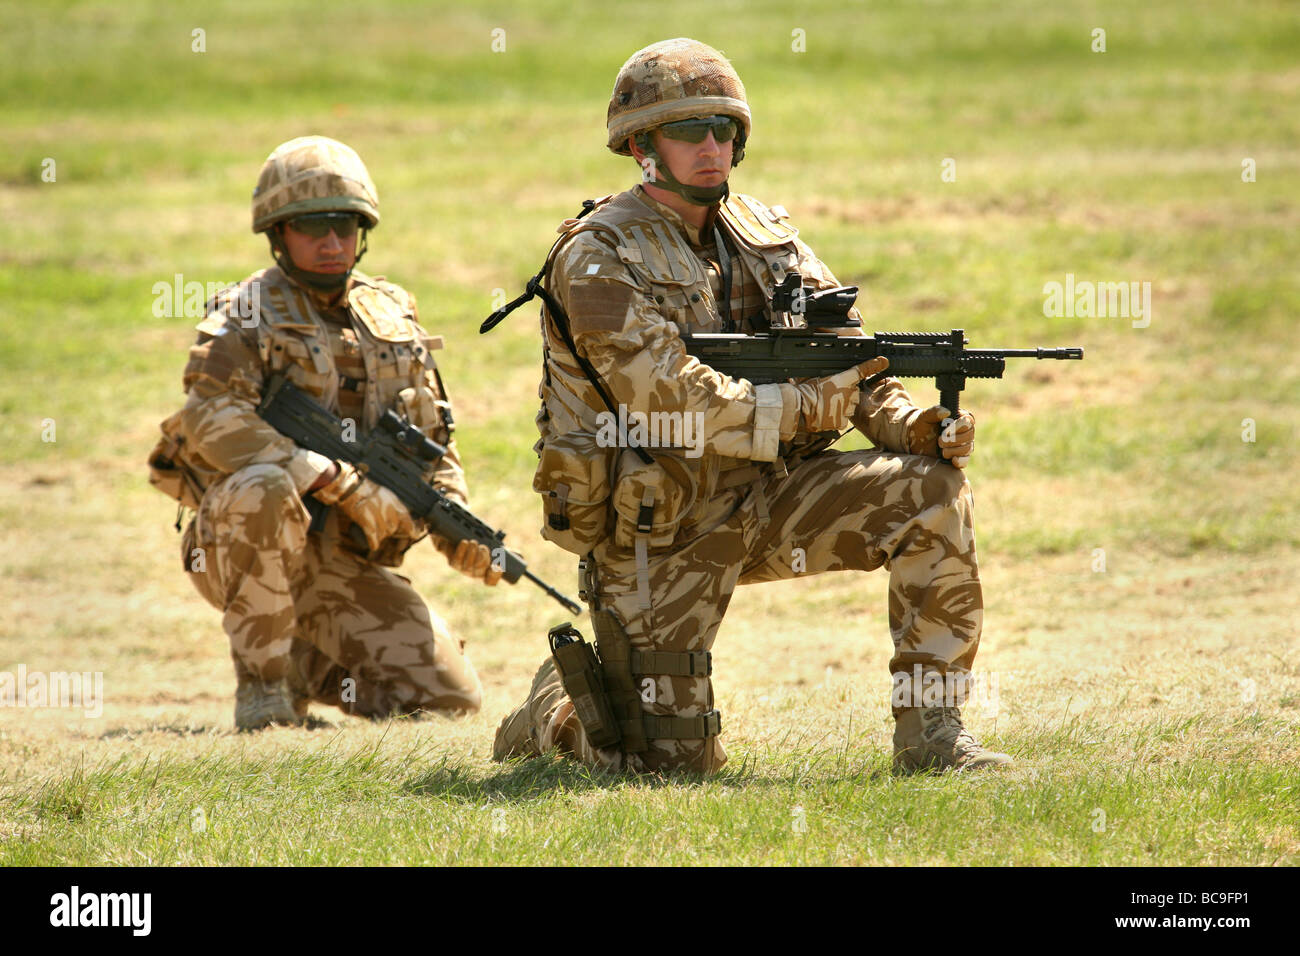 British Army infantry on exercise in UK Stock Photo